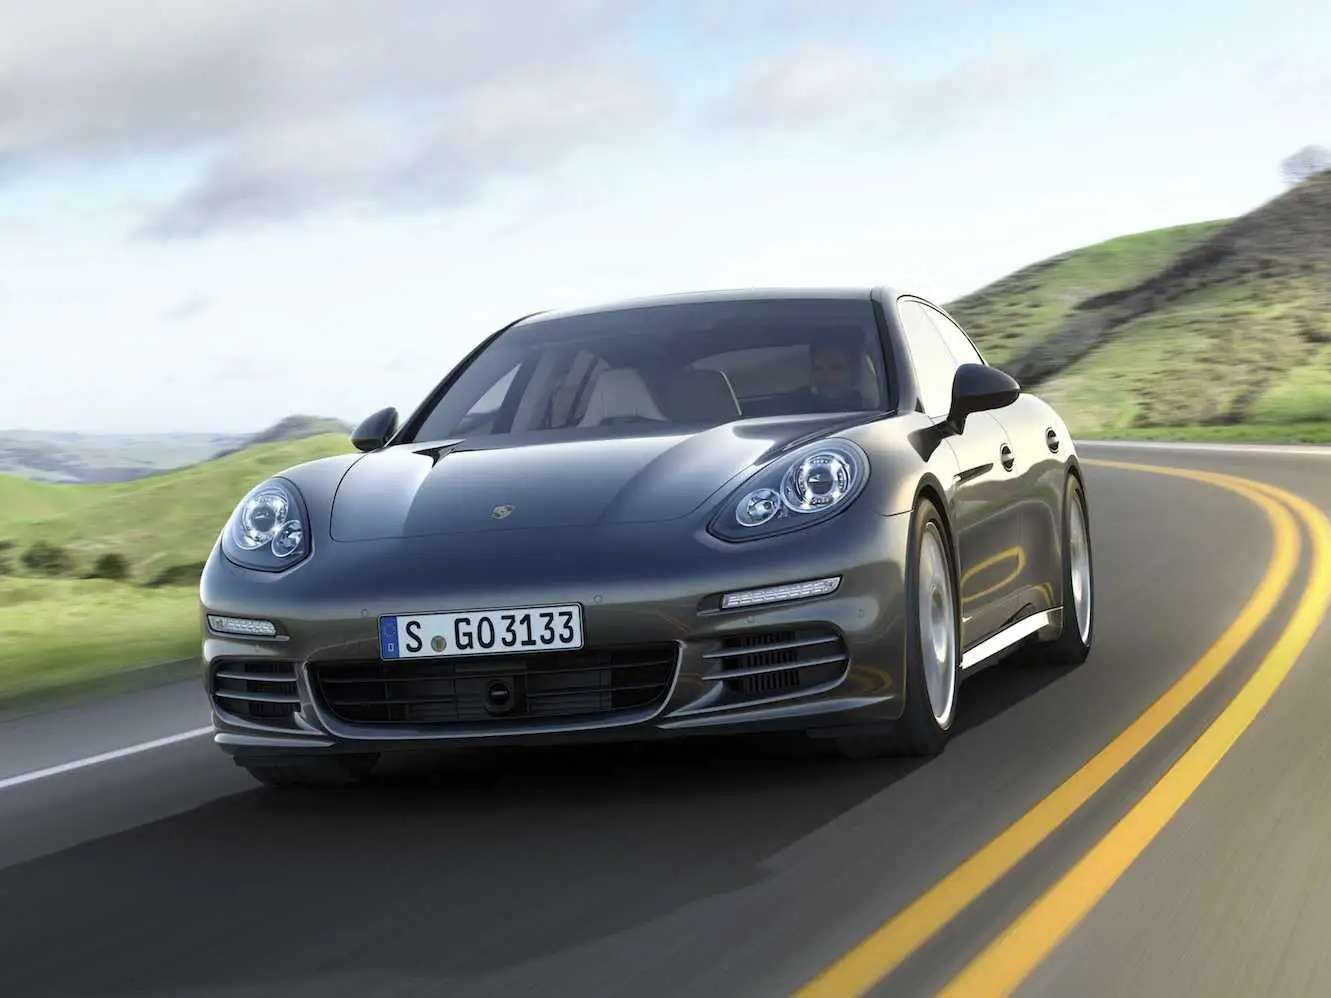 Porsche acquired nearly all of Volkswagen's shares in 2006, ultimately making €30-40 billion.